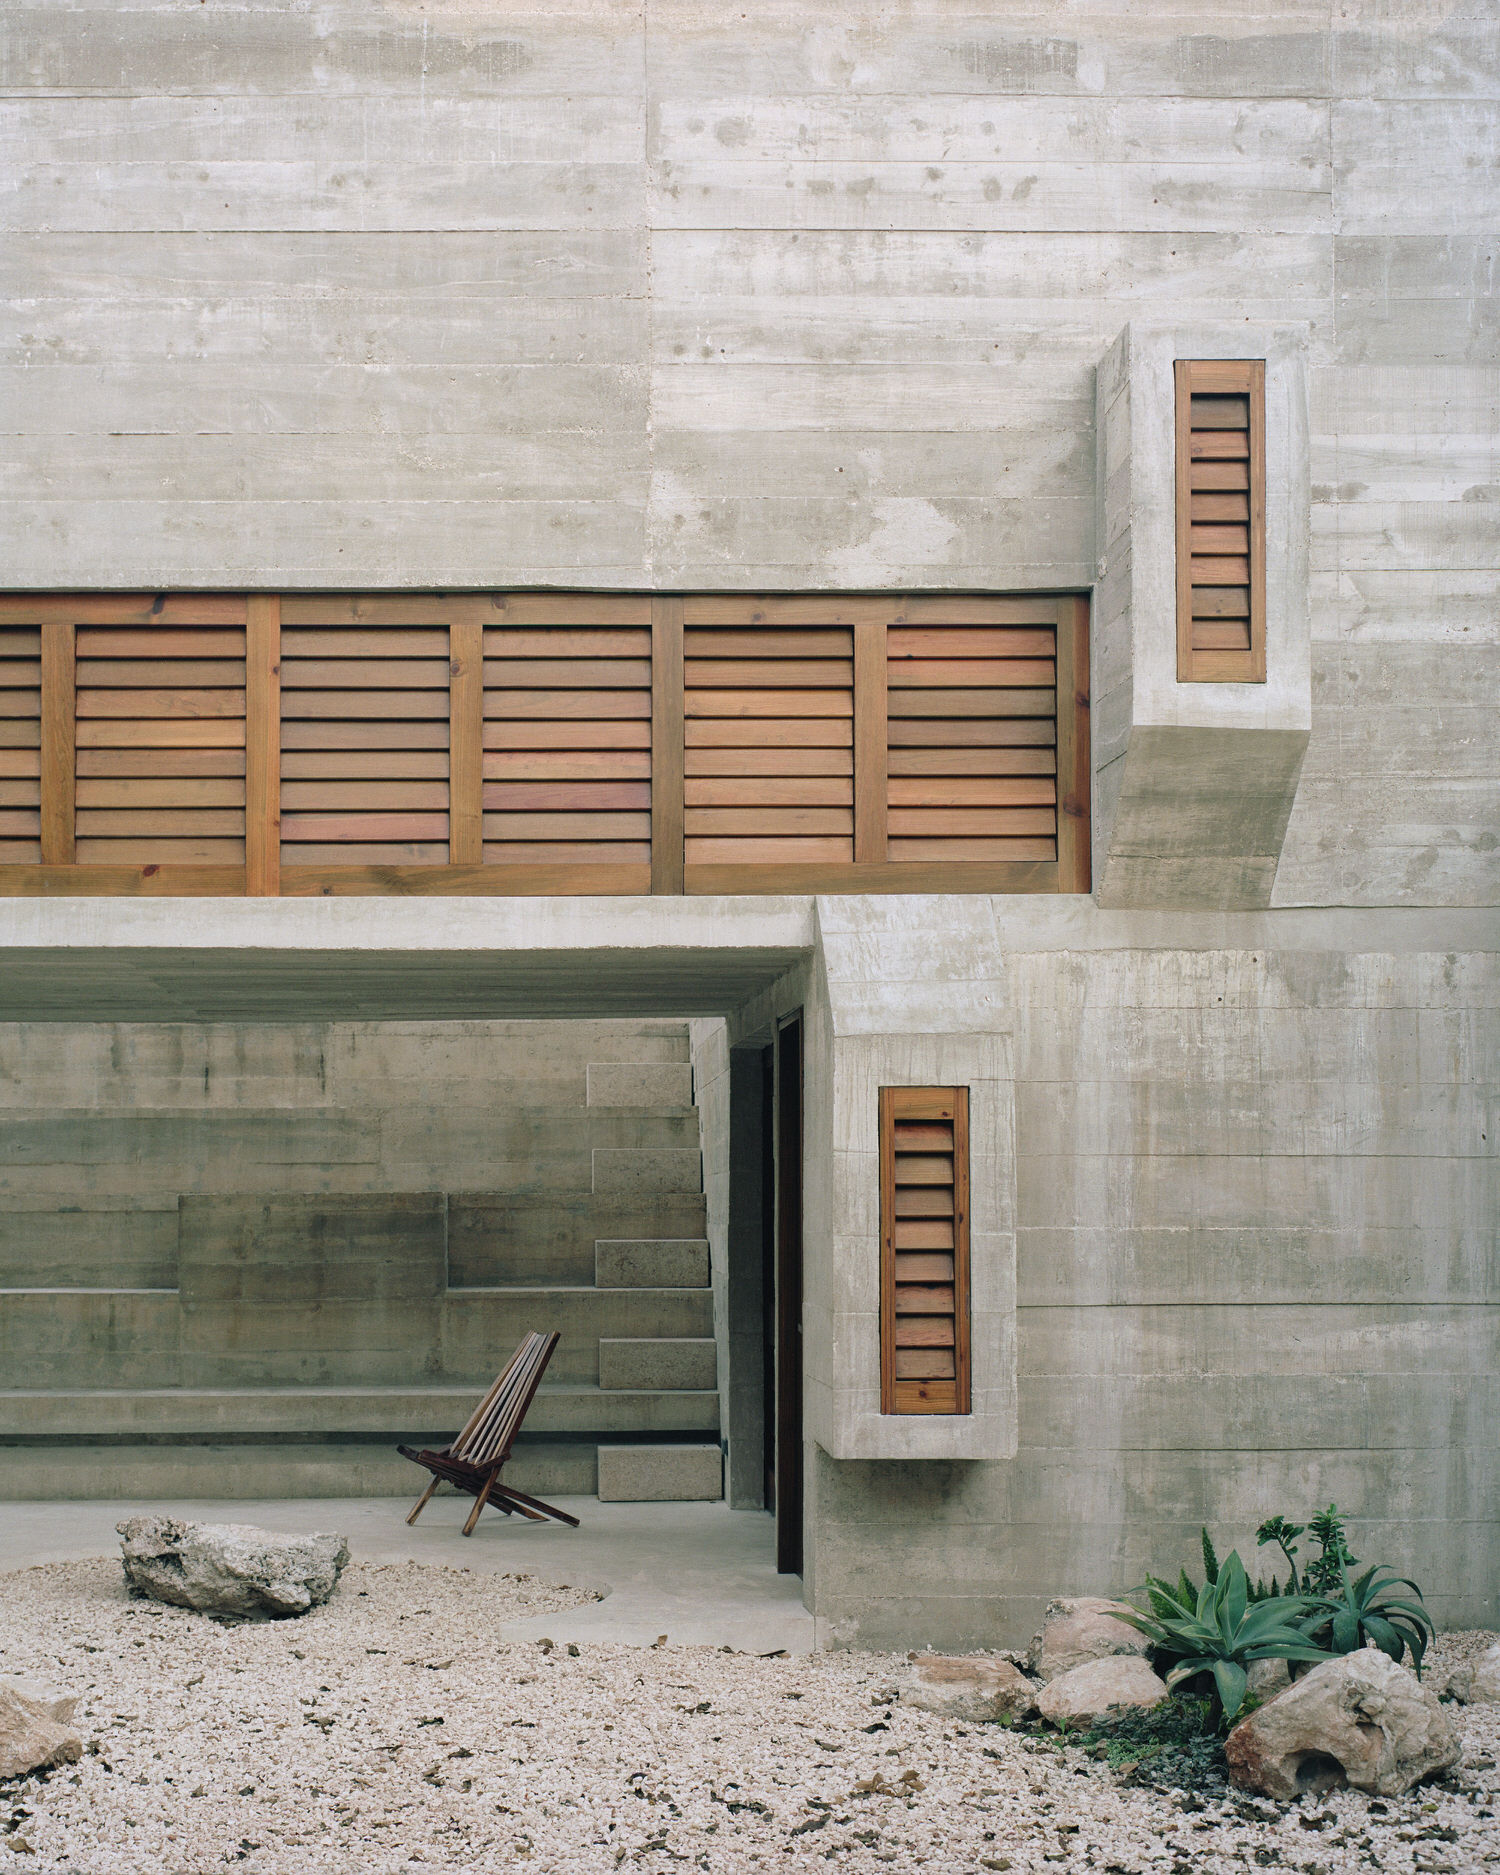 Casa Merida in Yucatan, Mexico, Residential Architecture, Ludwig Godefroy, Photo Rory Gardiner | Yellowtrace